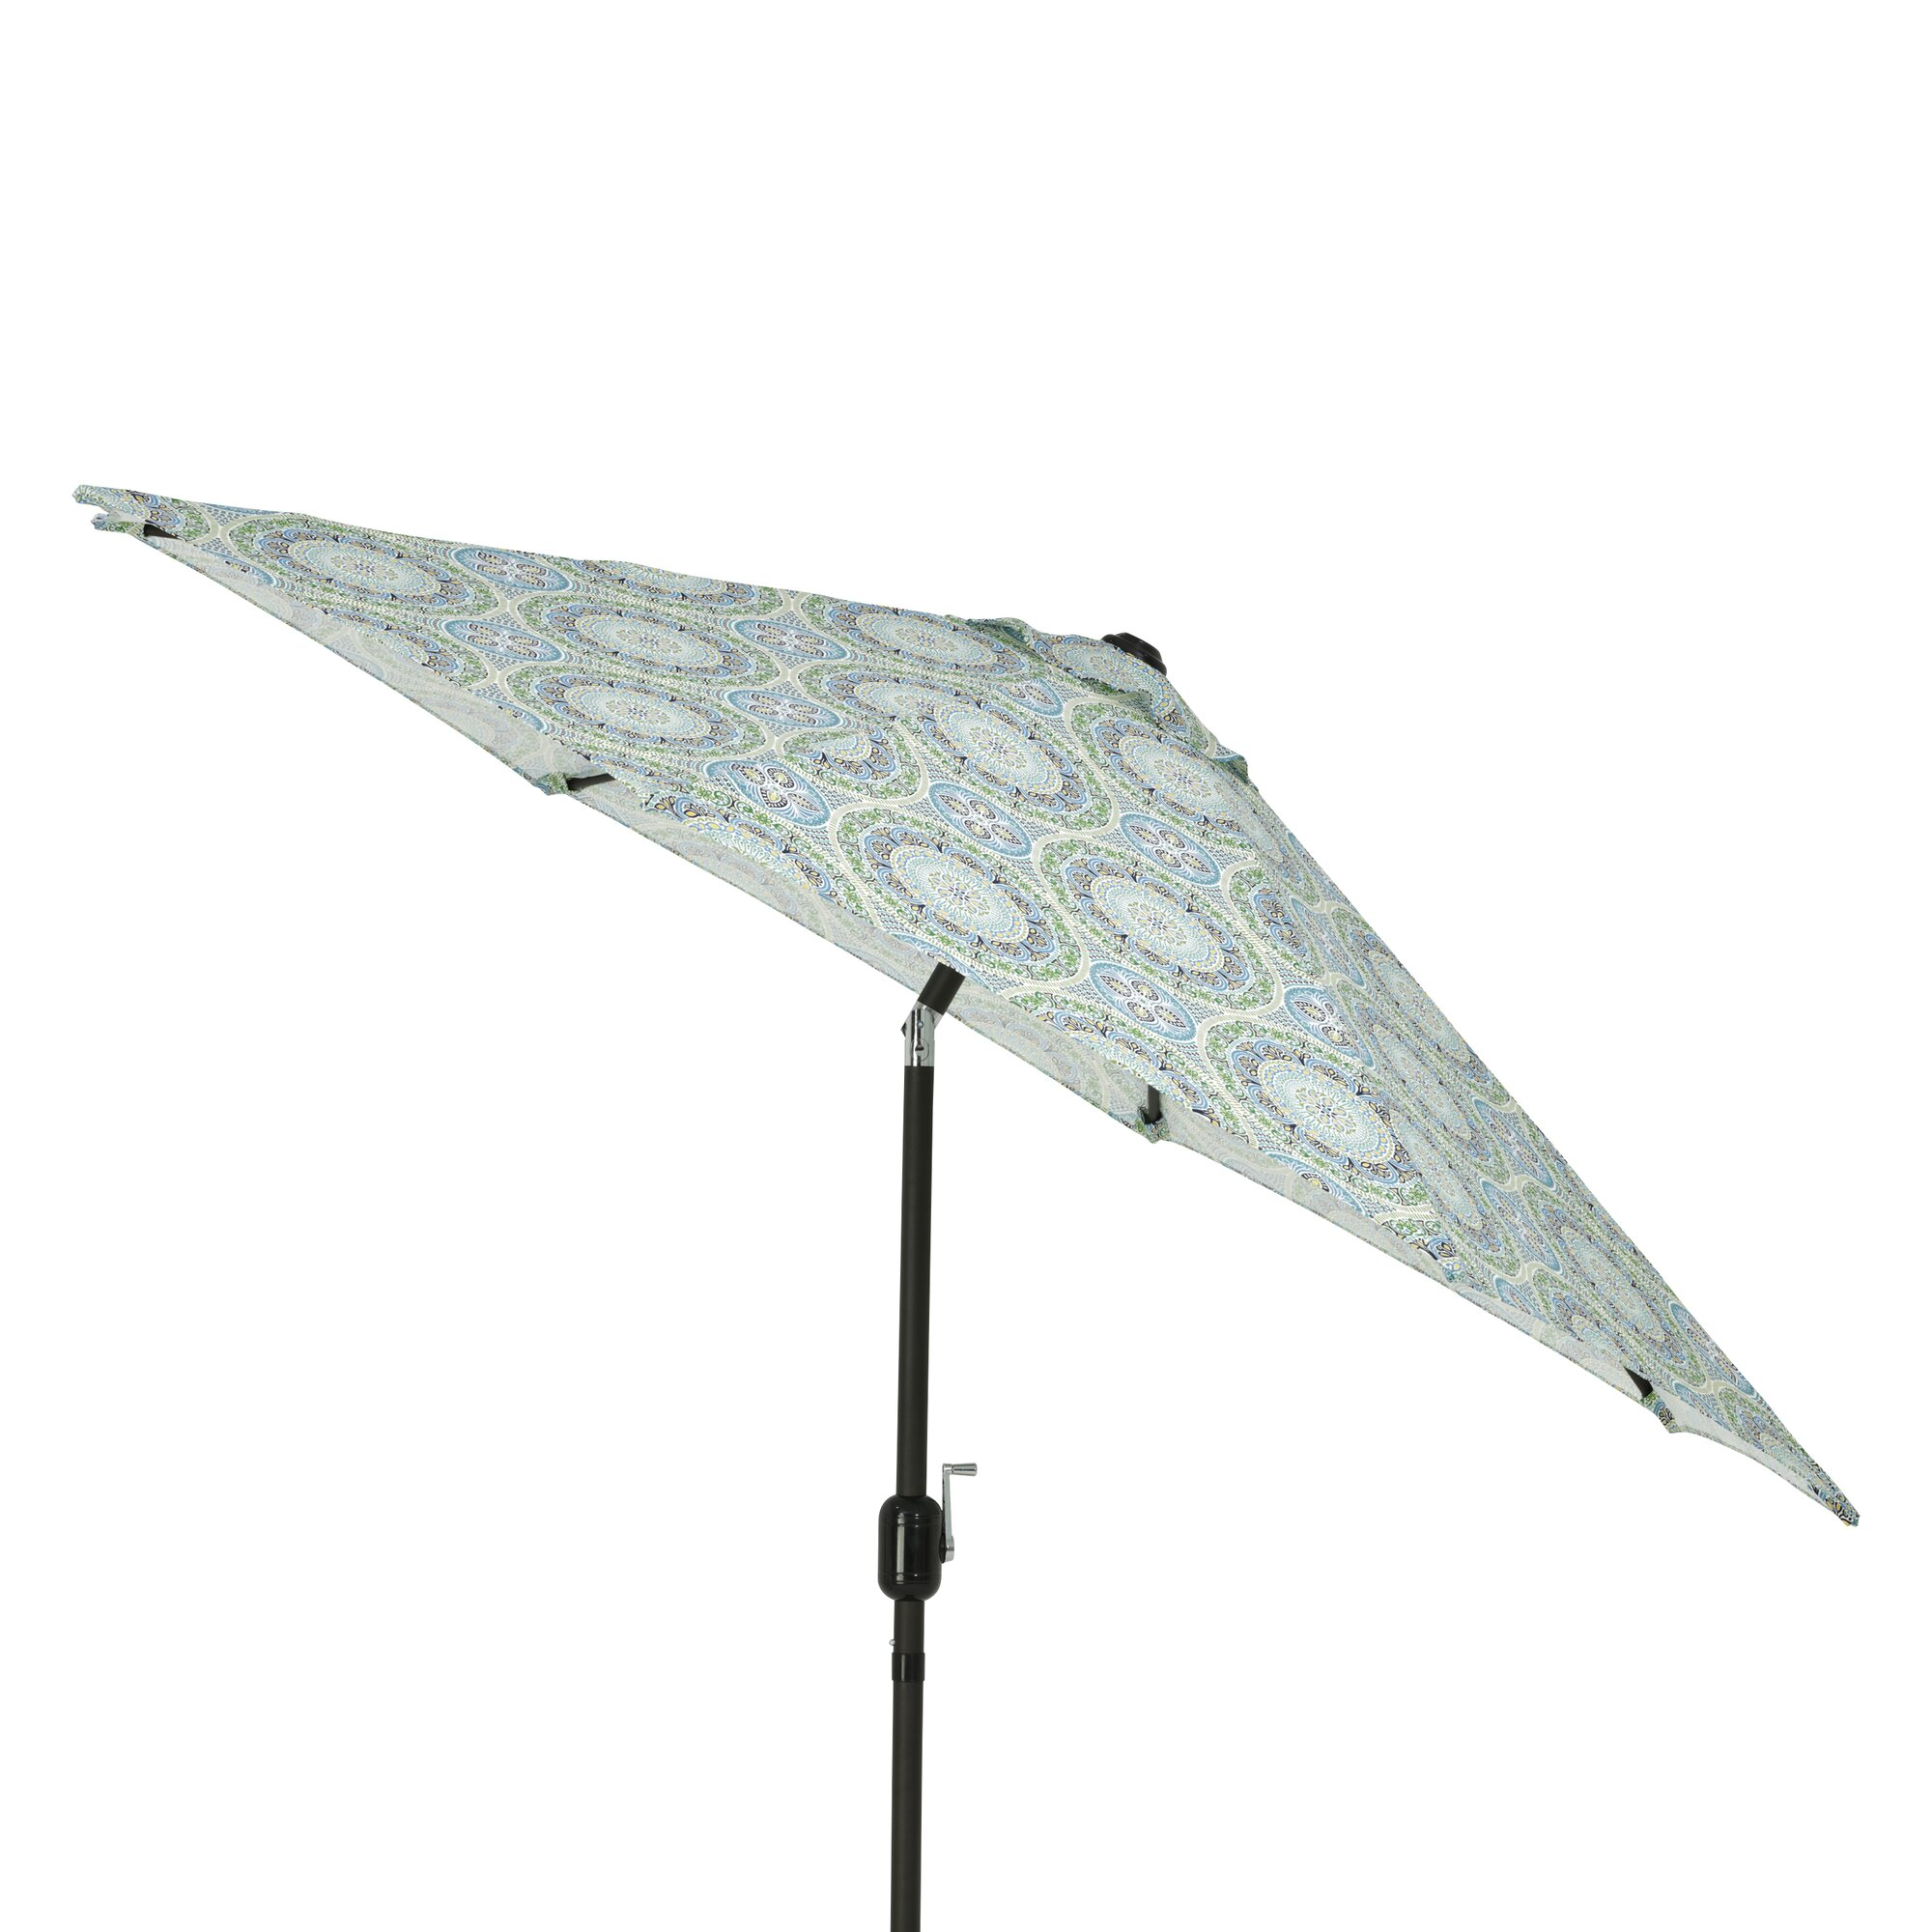 Cheney 9 Foot Patio Market Umbrella